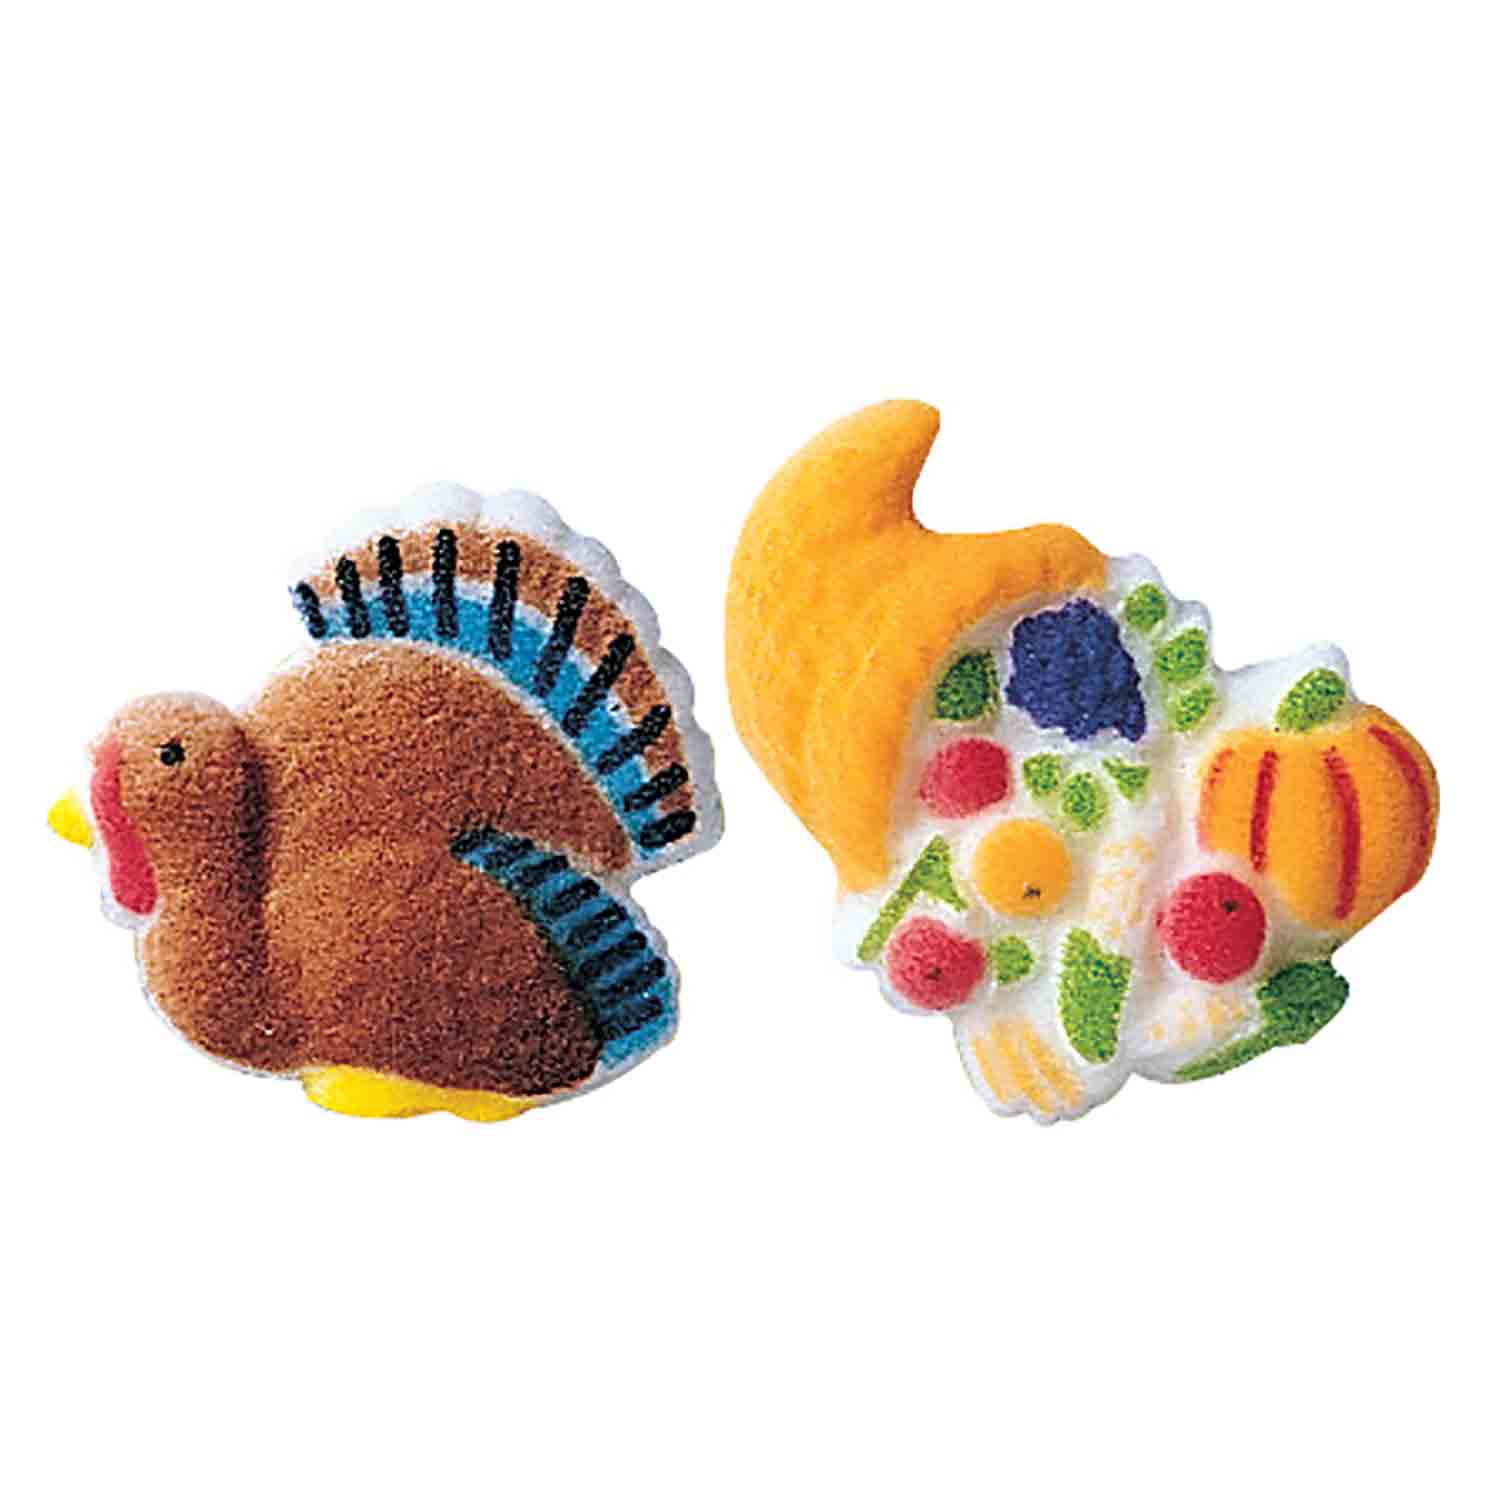 Dec-Ons® Molded Sugar - Turkey & Cornucopia